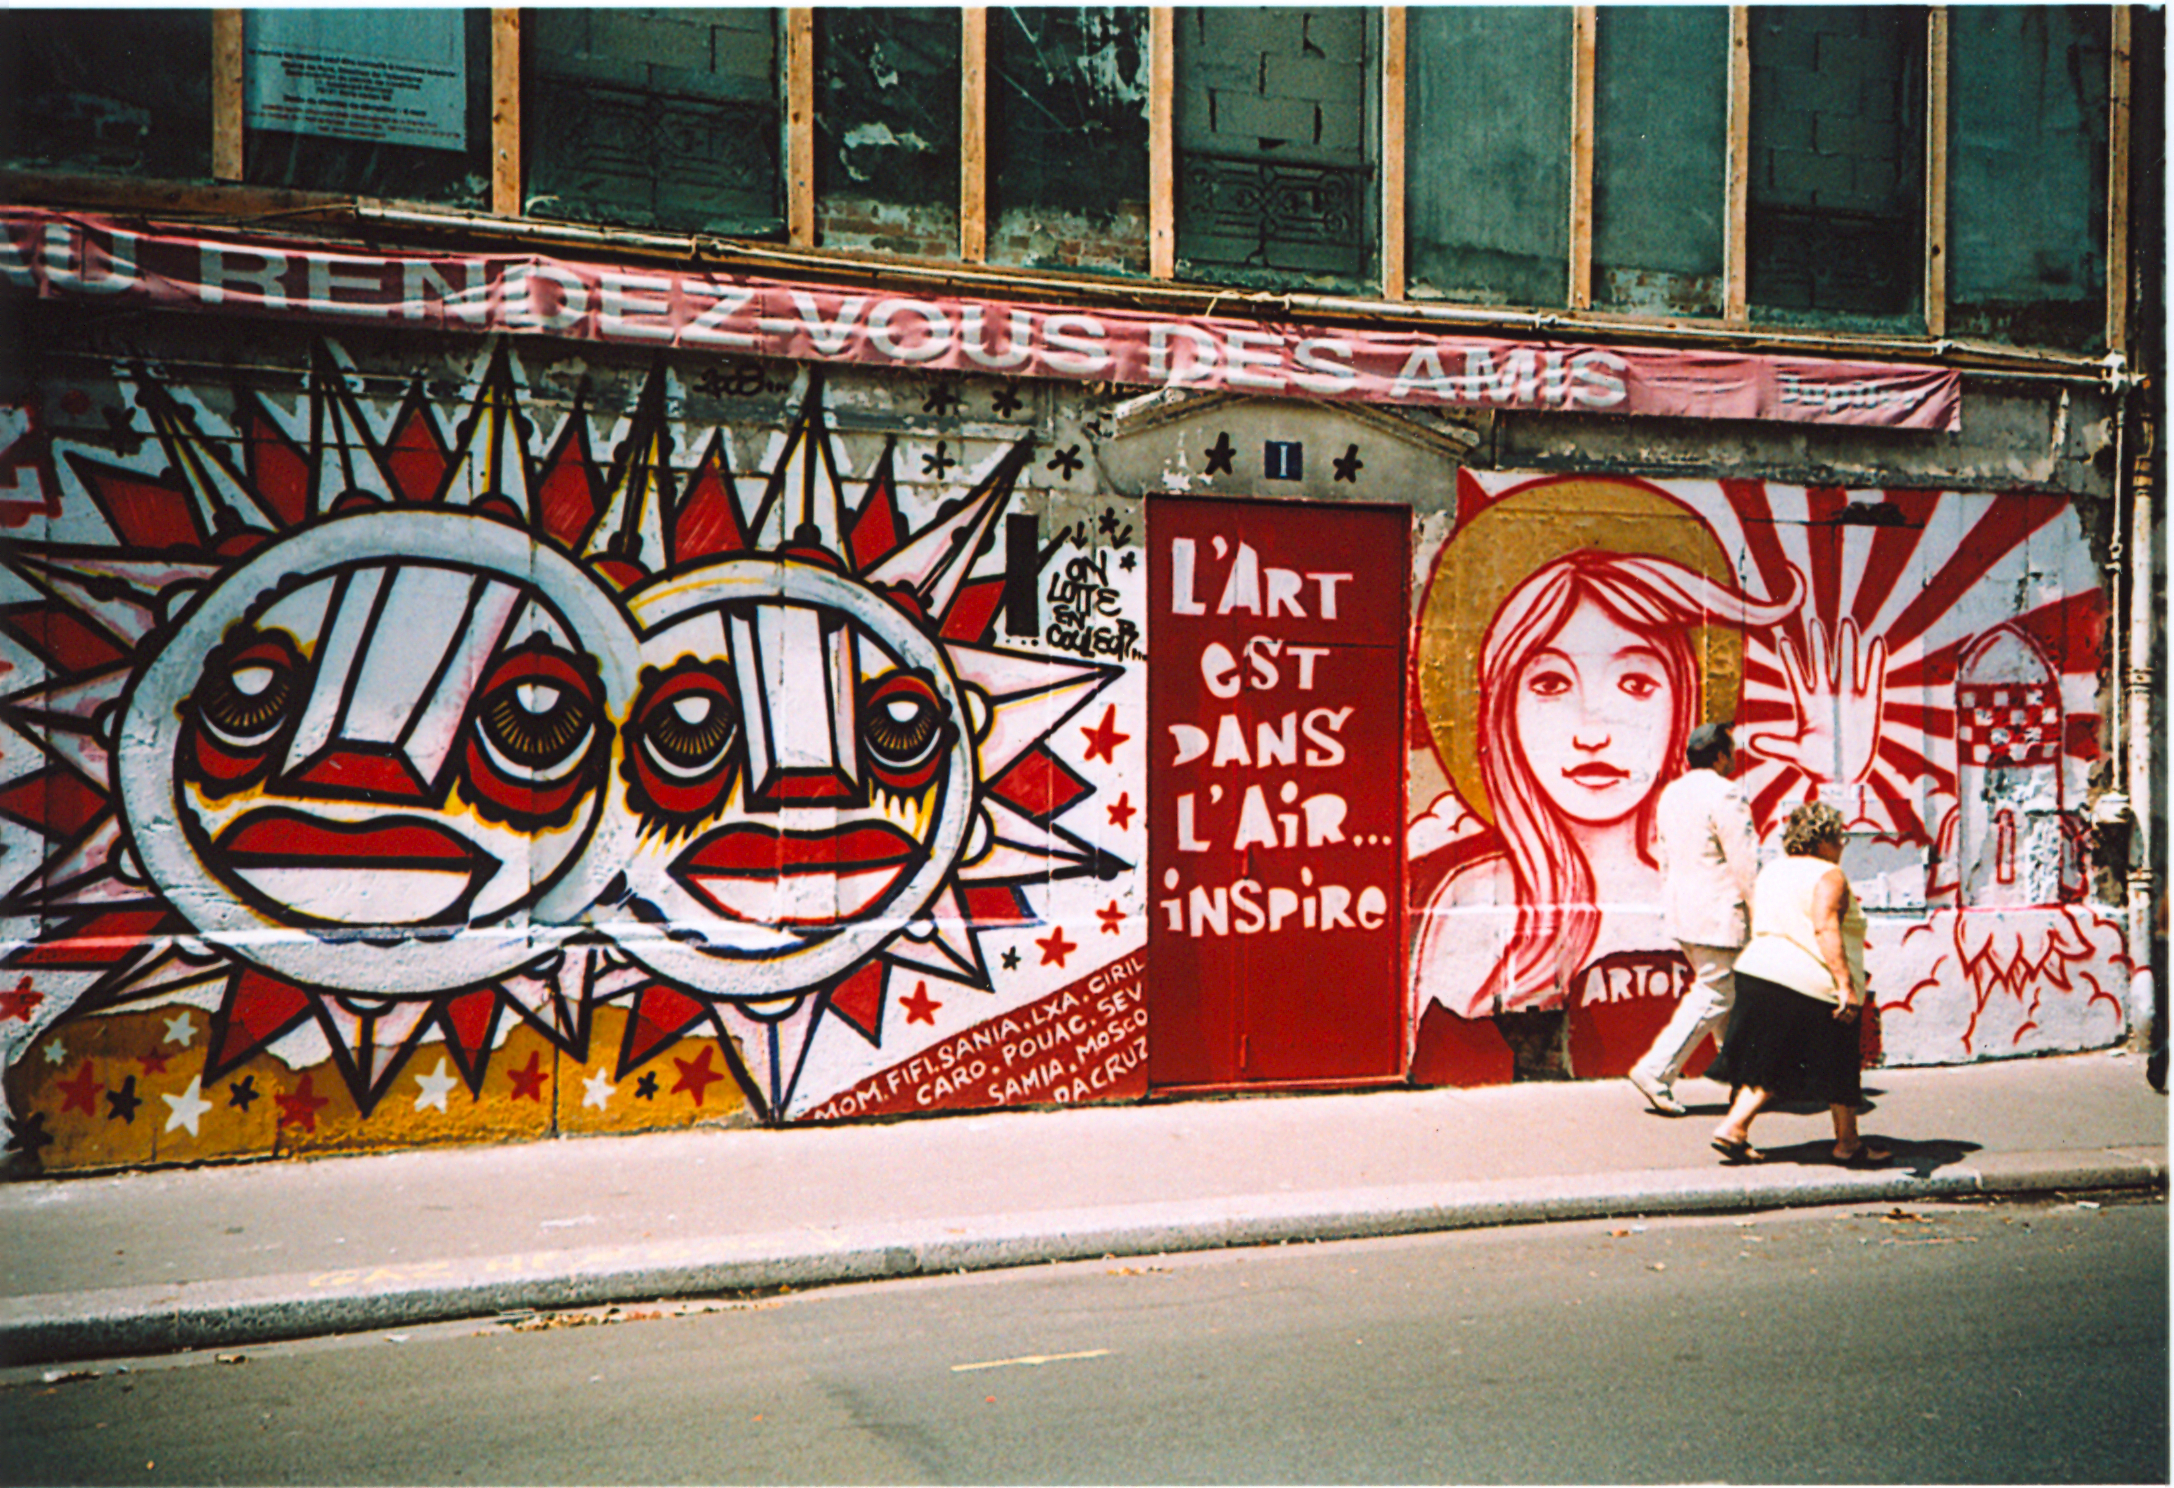 graffiti of suns and a woman holding up her hand, with the text: art is in the air ... inspires